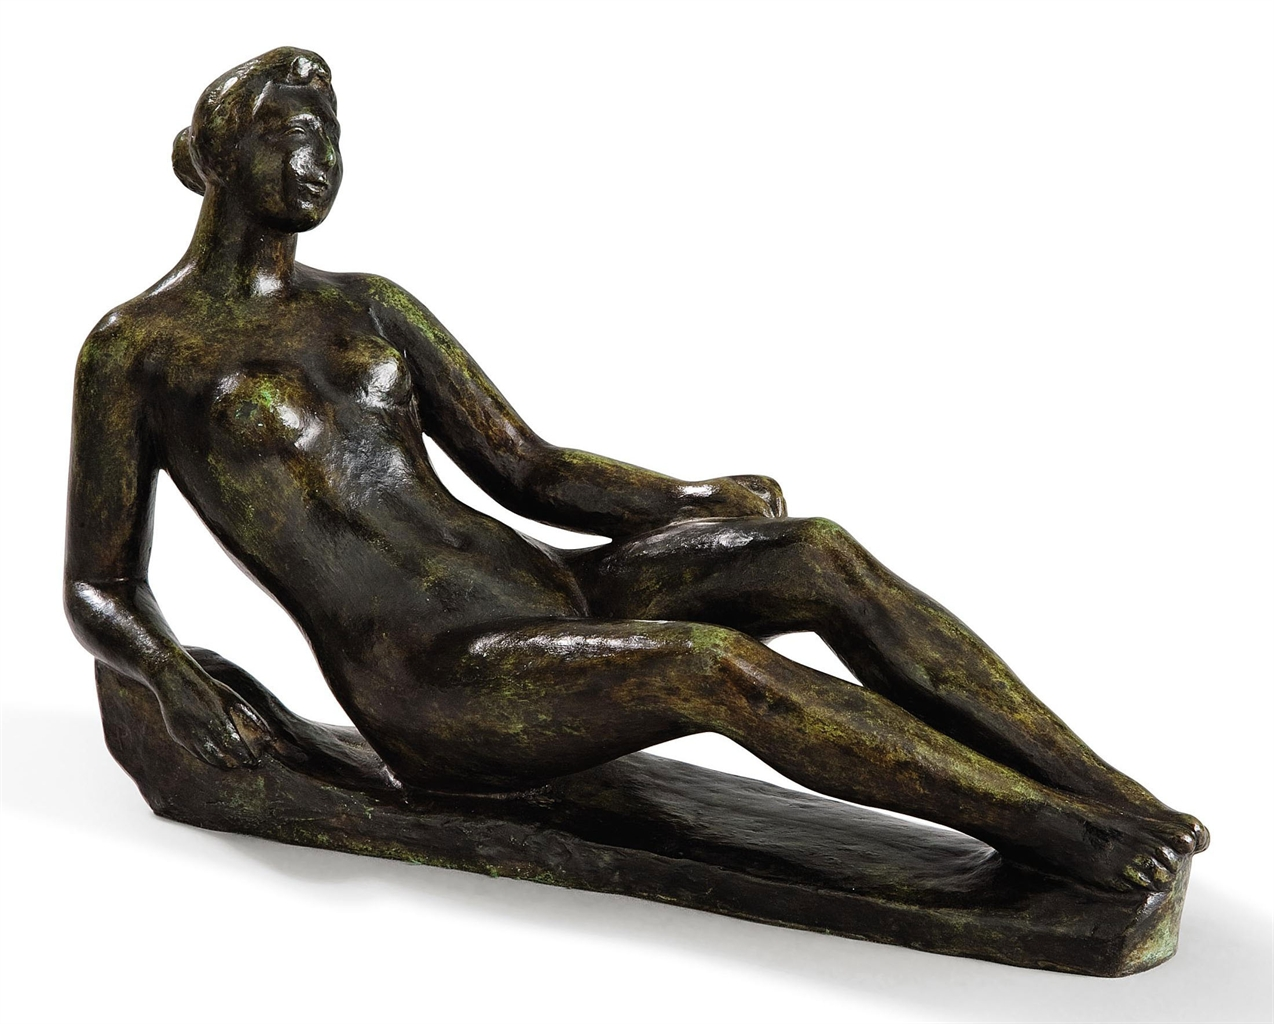 Photos of Douleur statue by A Maillol in Jardin du